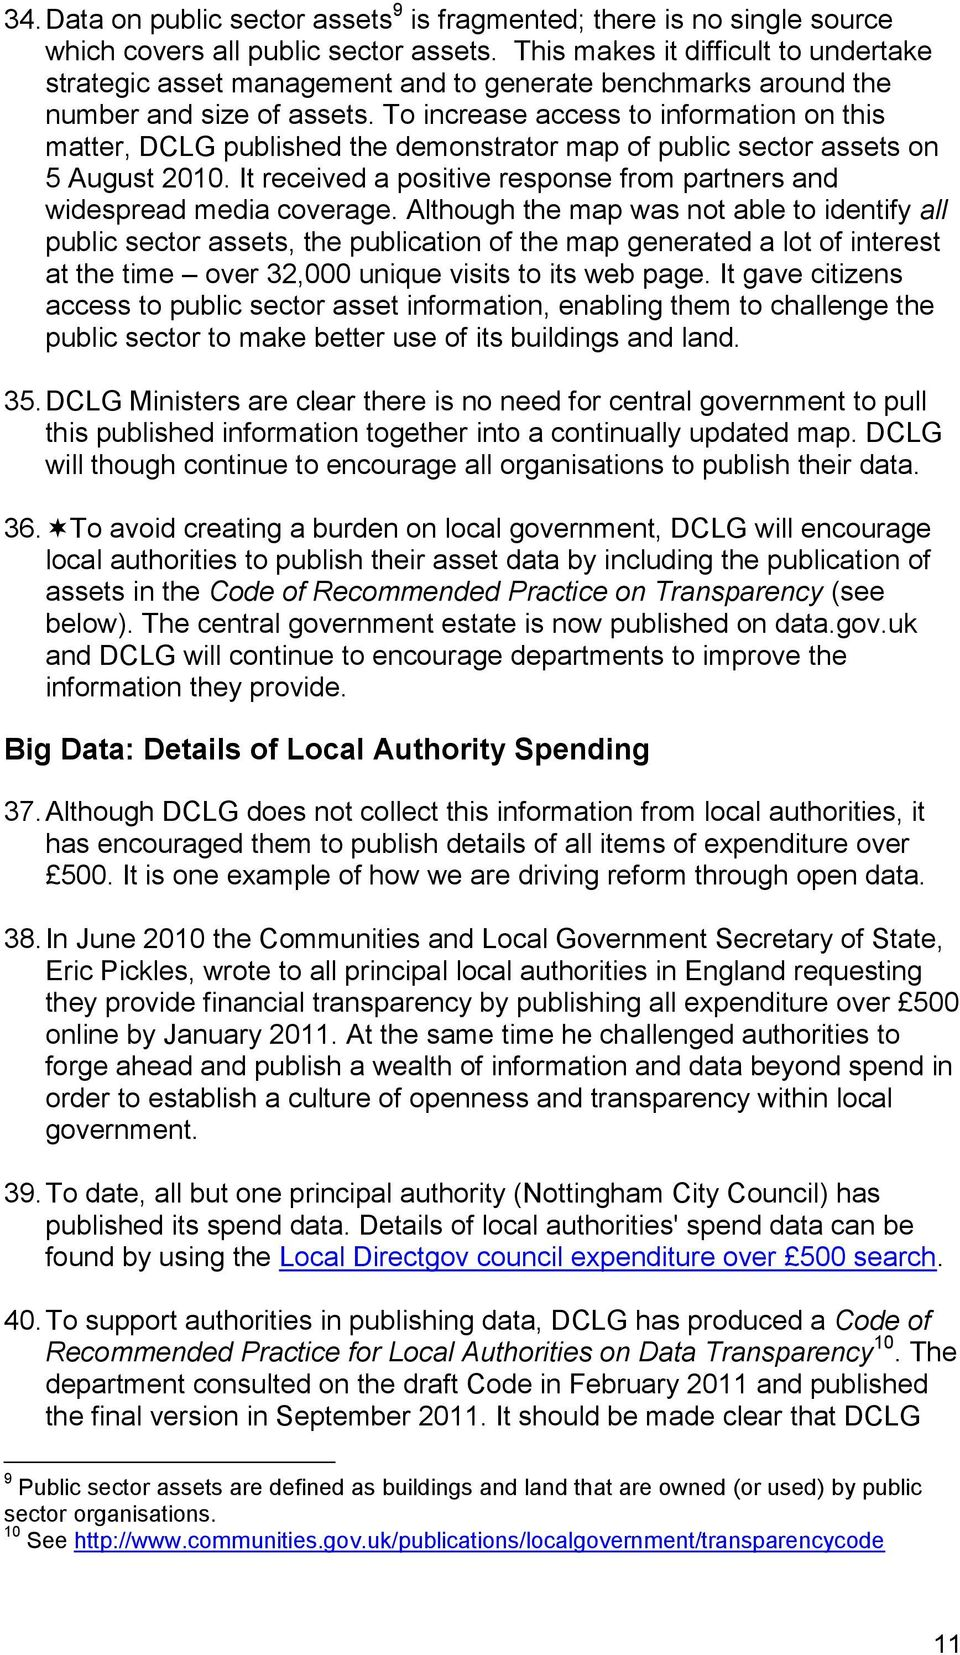 To increase access to information on this matter, DCLG published the demonstrator map of public sector assets on 5 August 2010.